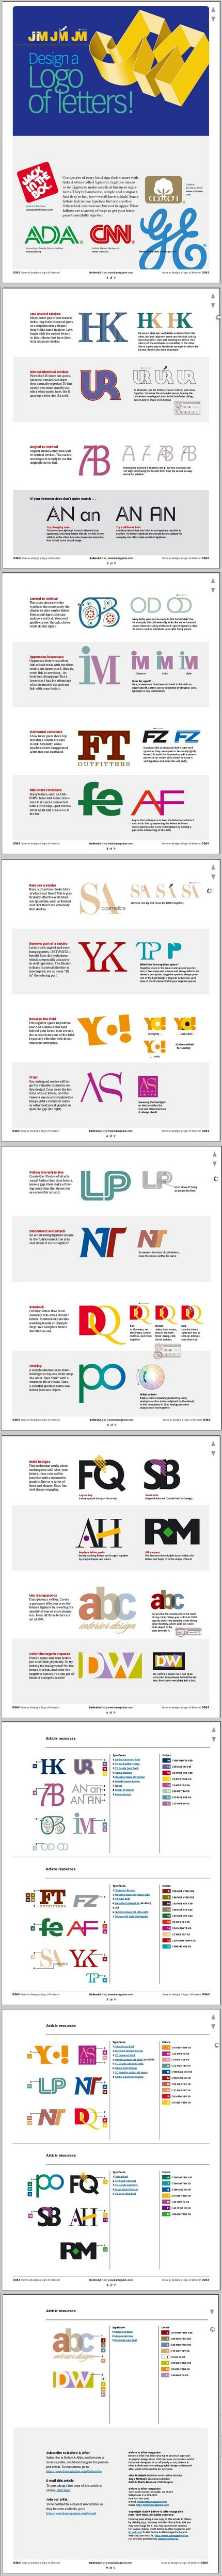 Un logo din litere (PDF gratuit pe Before and After)